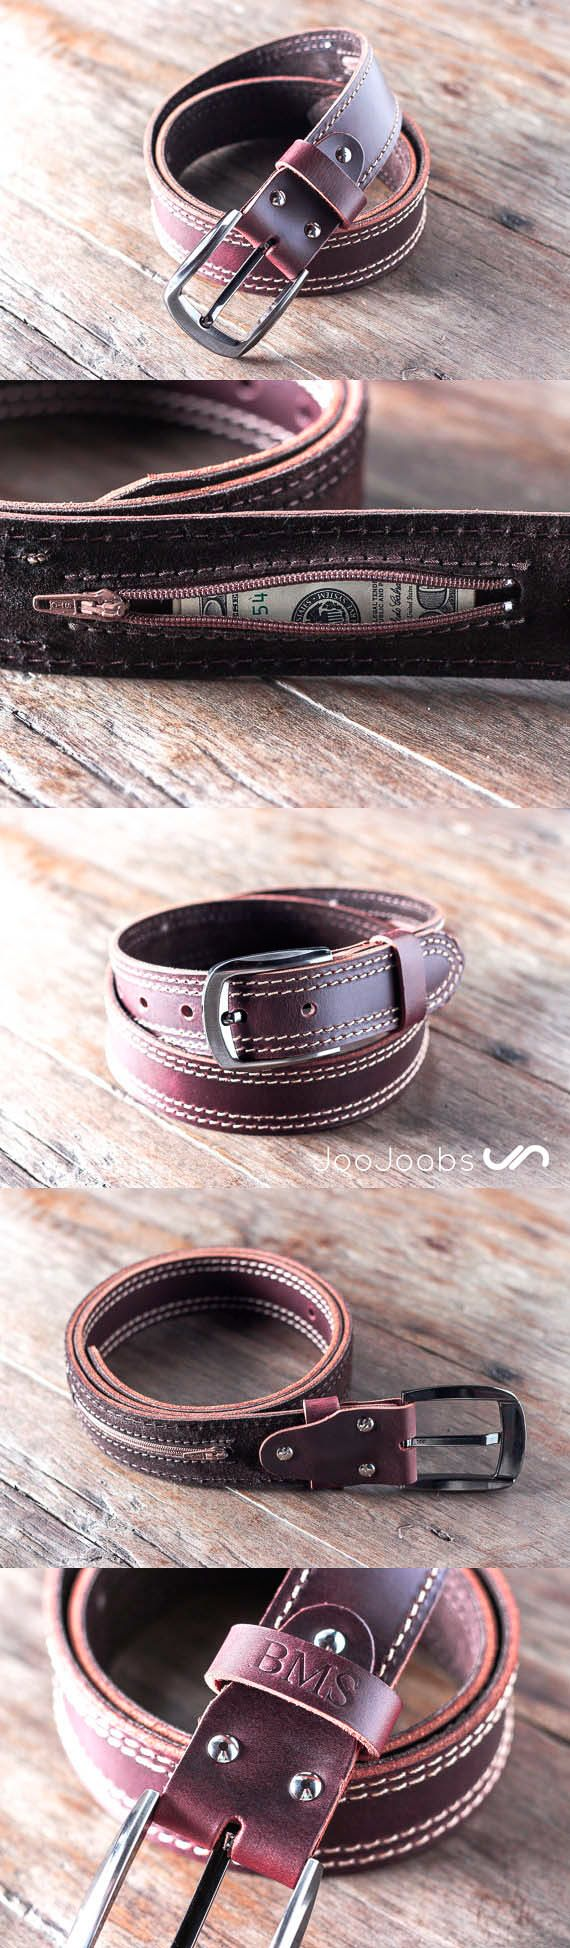 Probable the last handmade leather belt you will ever buy!! FREE personalization makes this an awesome gift for men.